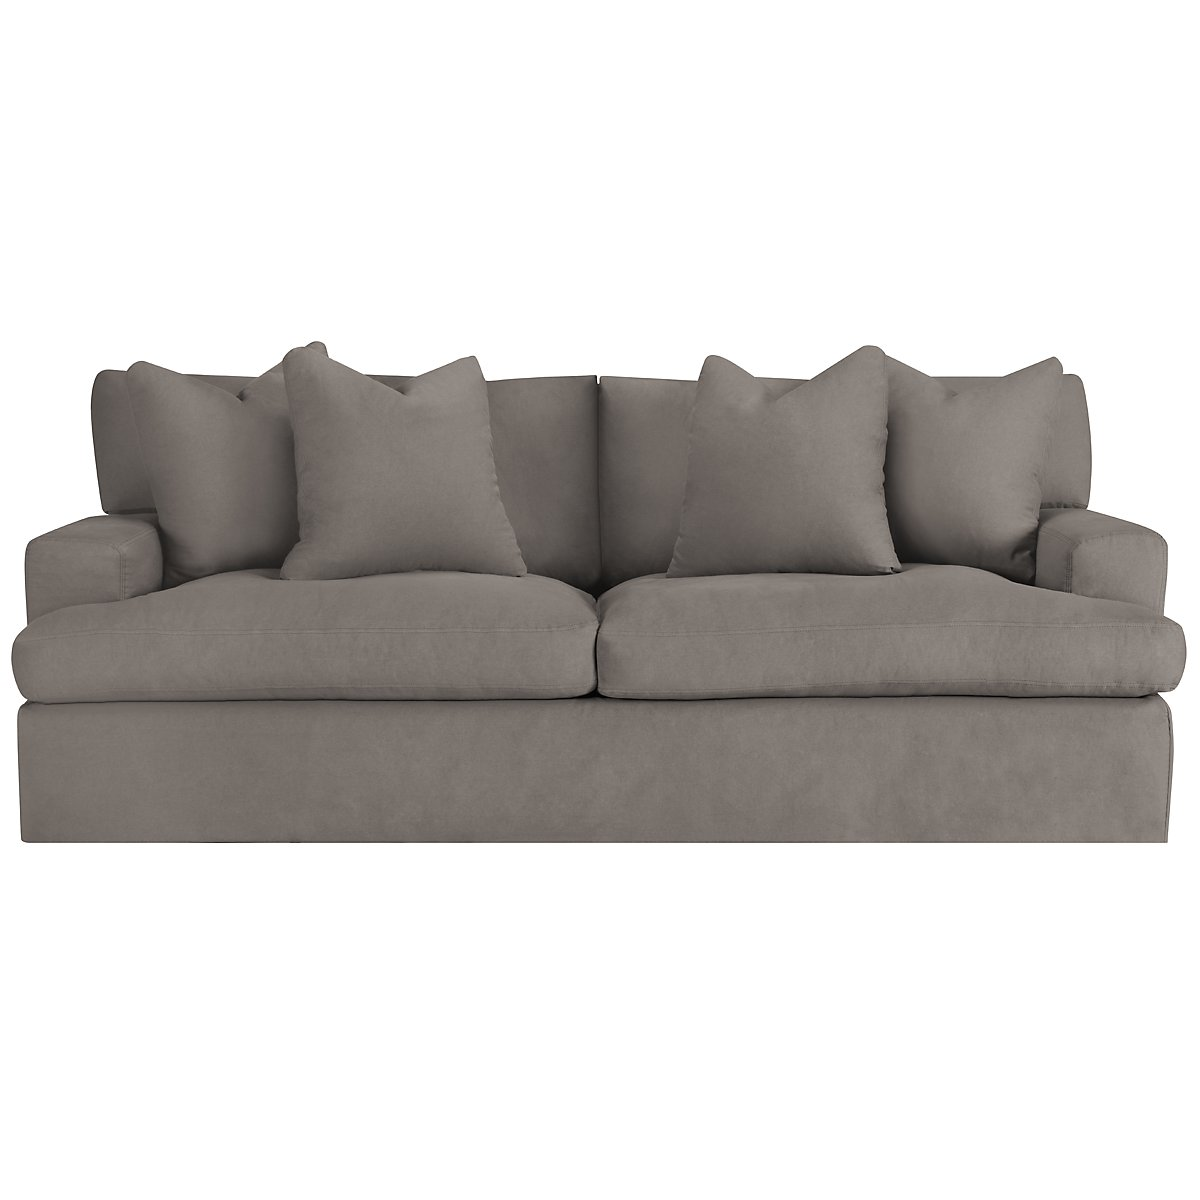 City Furniture Delilah Gray Fabric Sofa